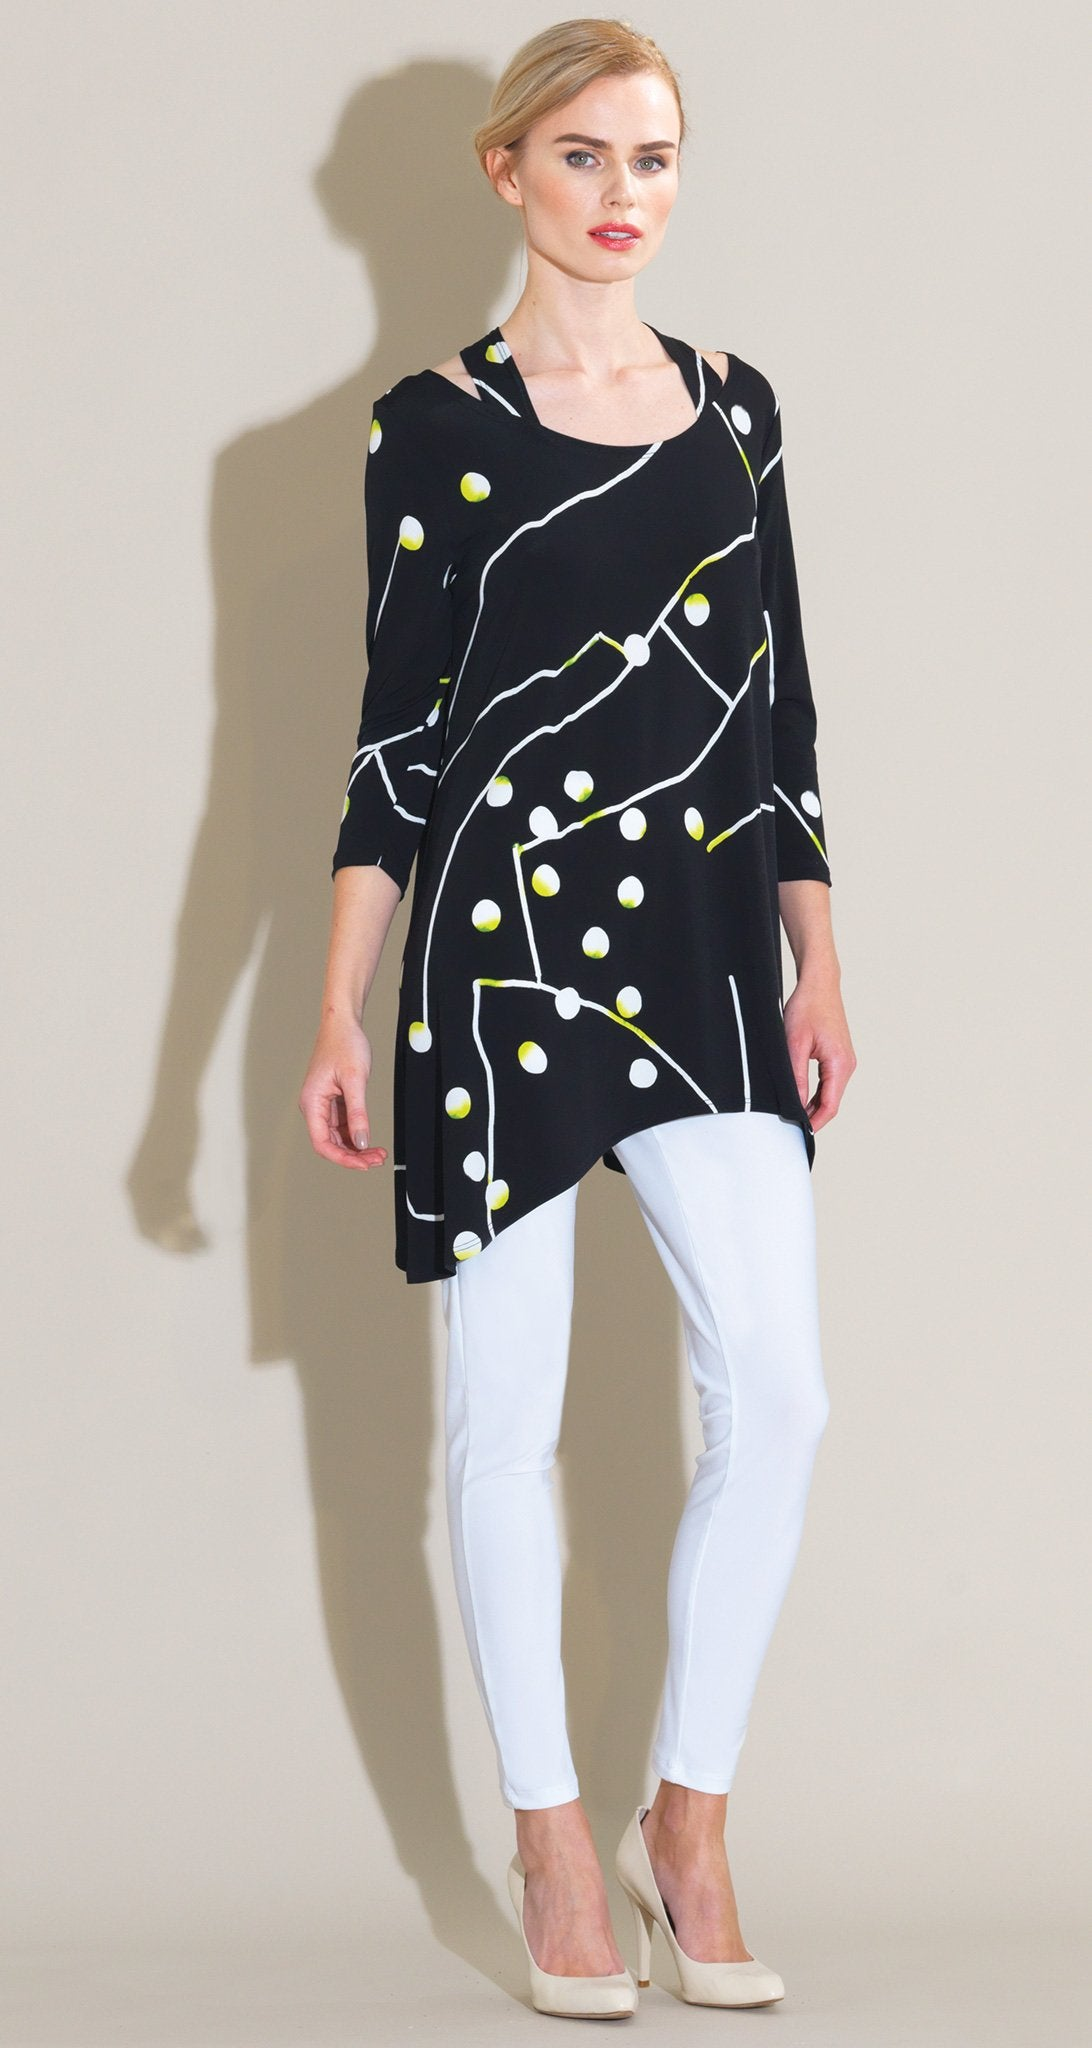 Dots & Lines Print Faux Racer Back Tunic - Black/White